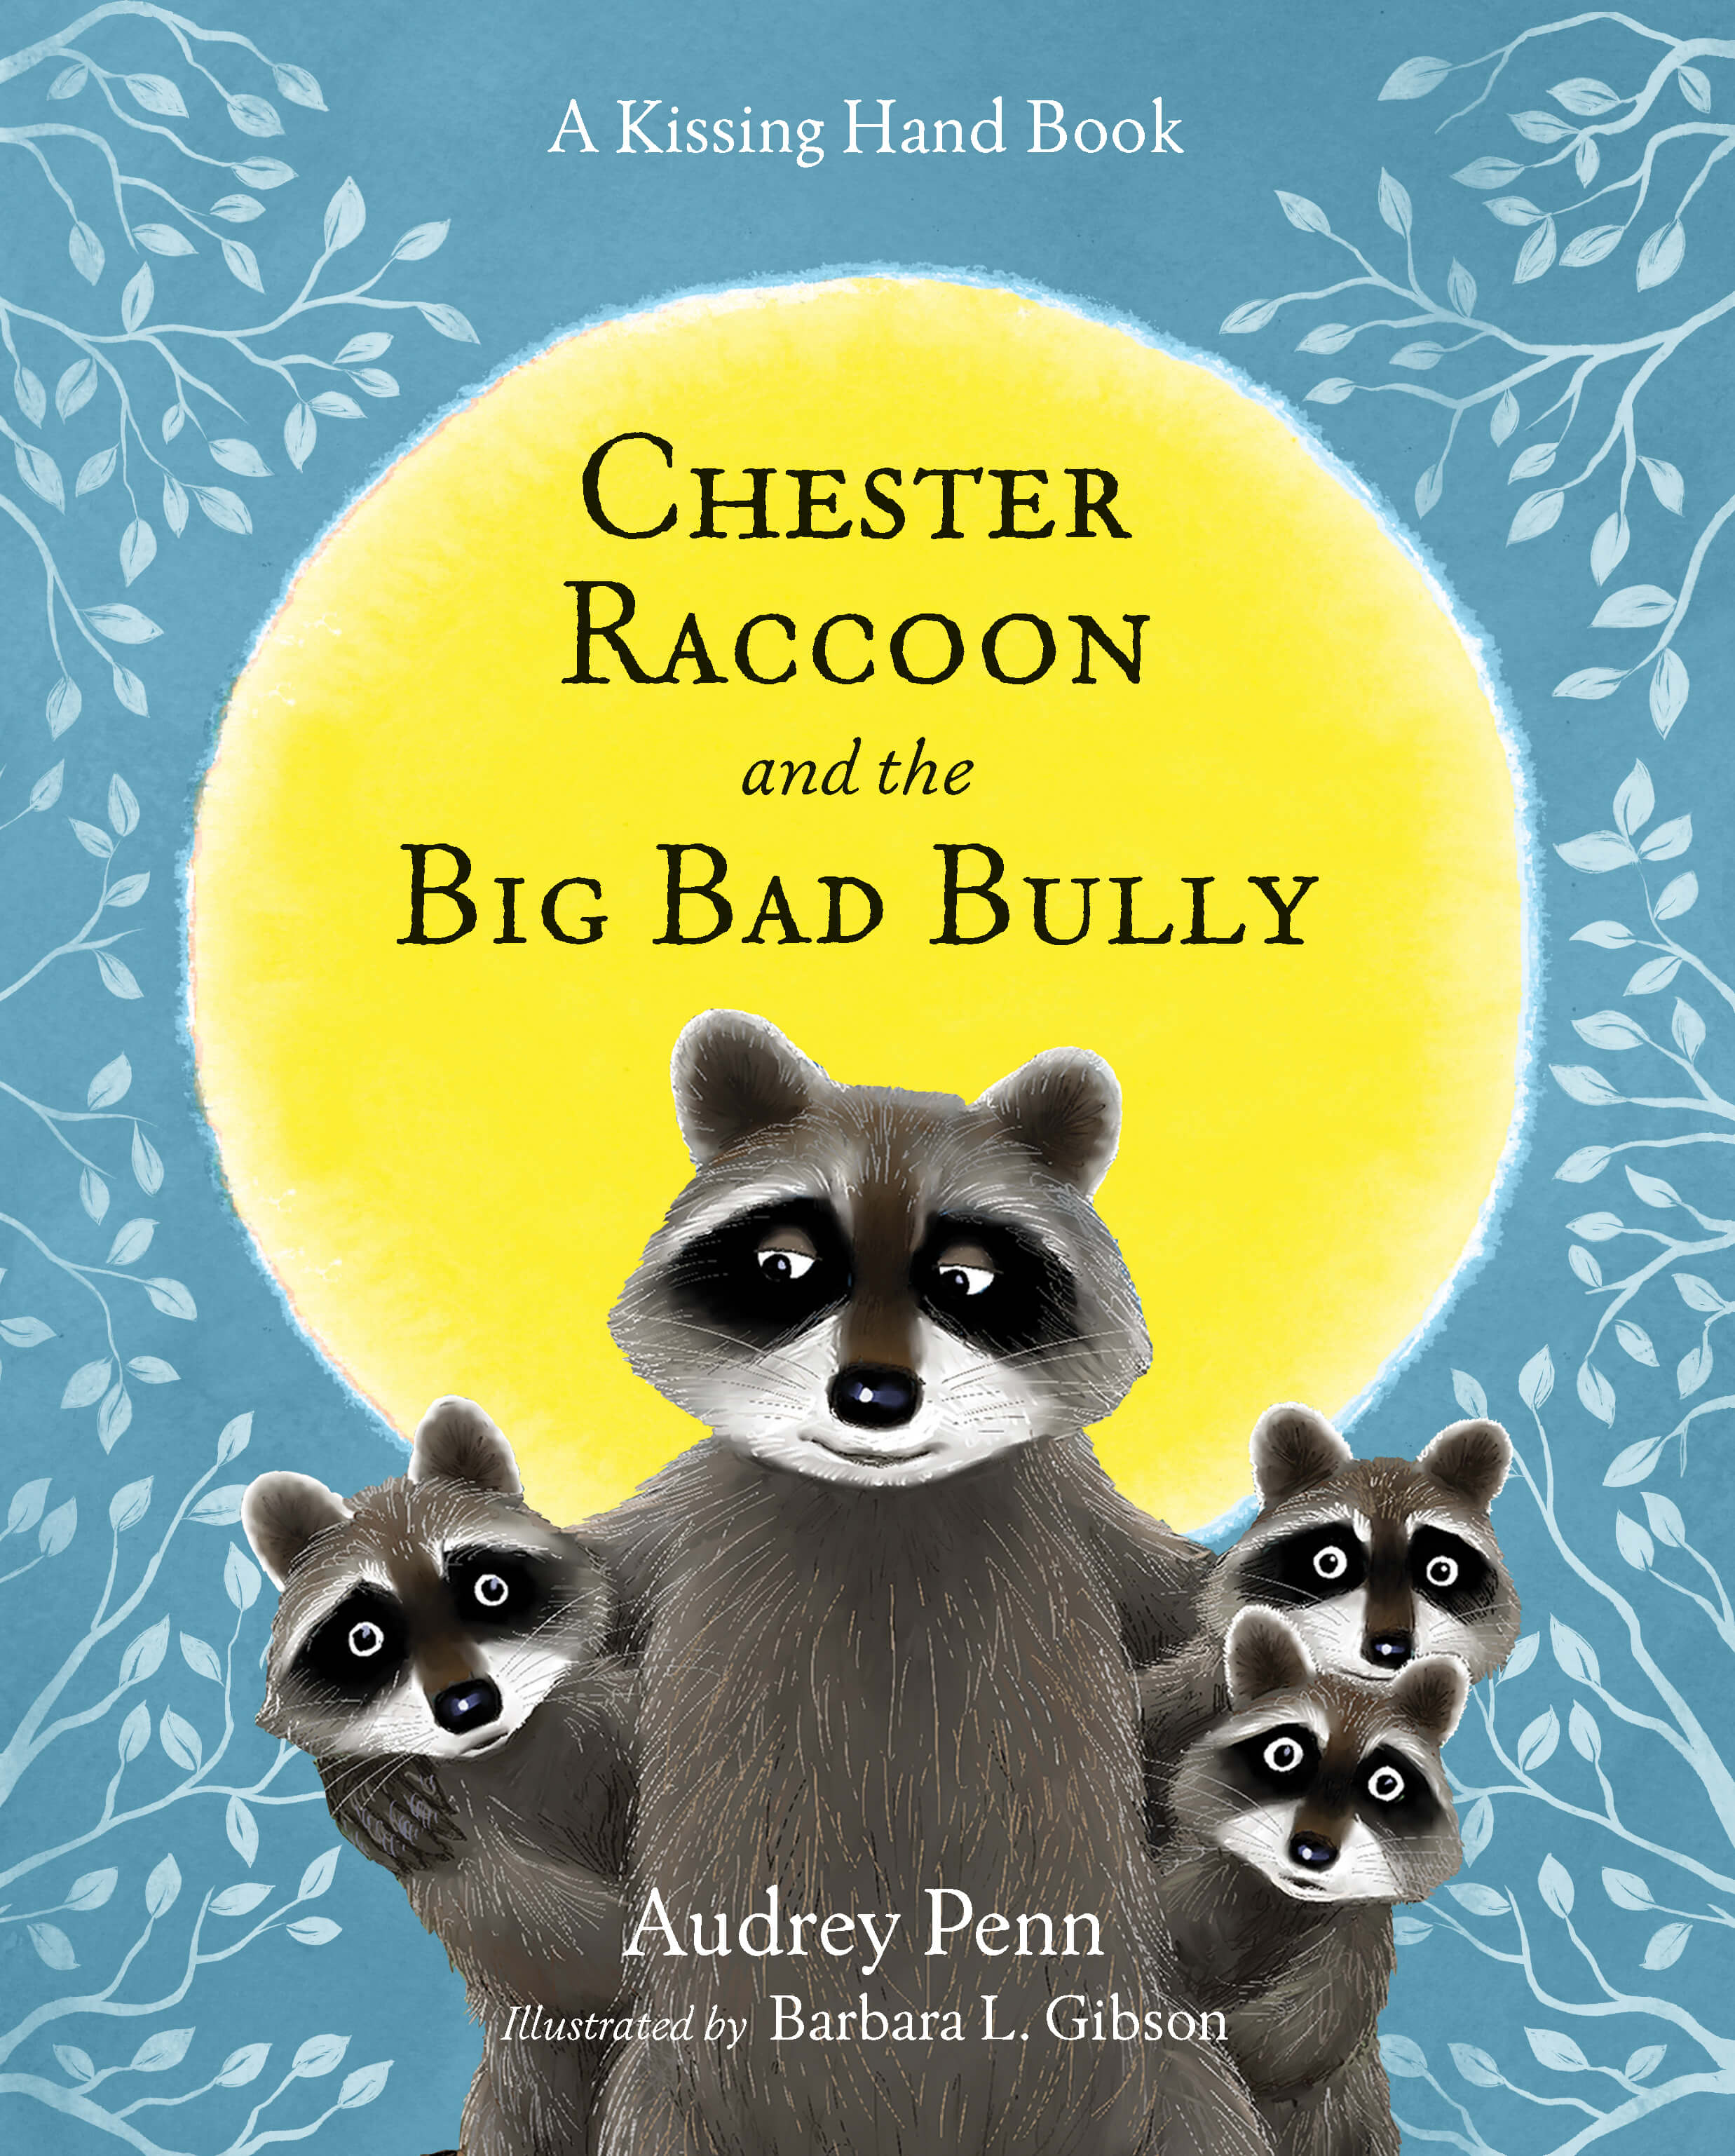 Chester Raccoon and the Big Bad Bully 2016 Book Cover